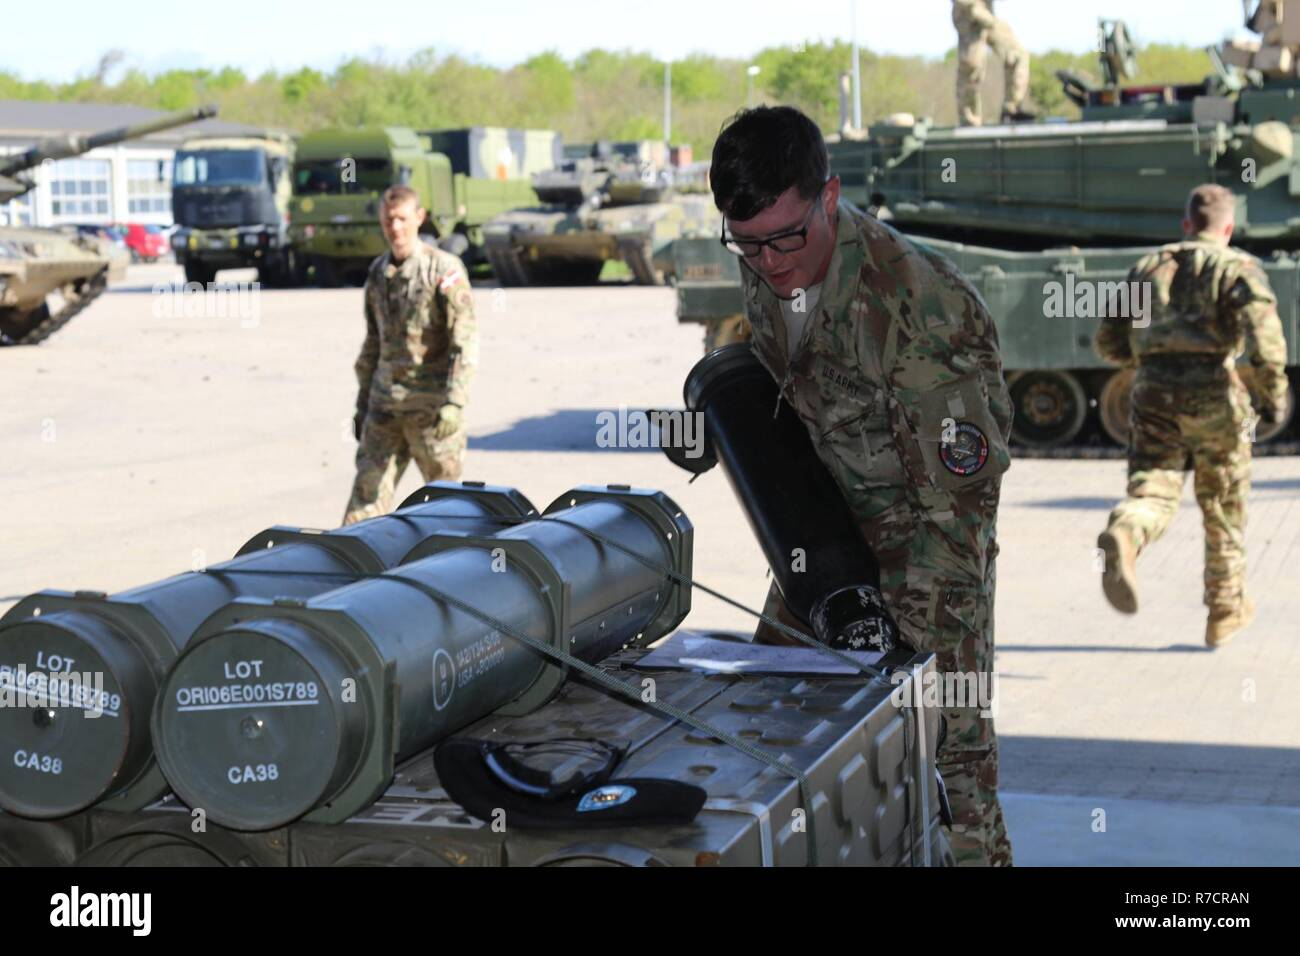 1st Lt. Elisha Gueli, a platoon leader for Battle Company, 1st Battalion, 66th Armor Regiment, 3rd Armored Brigade Combat Team, 4th Infantry Division, unloads ammunition from an M1A2 Abrams tank during the Nordic Tank Challenge hosted by the Danish 1st Armoured Battalion, Jutland Dragoons Regiment, at Holstebro Barracks, Dragonkasernen, Denmark, May 15, 2017. The U.S. team's two tank crews have used the competition as a chance to build camaraderie with participating crews from Canada, Denmark, Germany, Norway and Sweden. Stock Photo